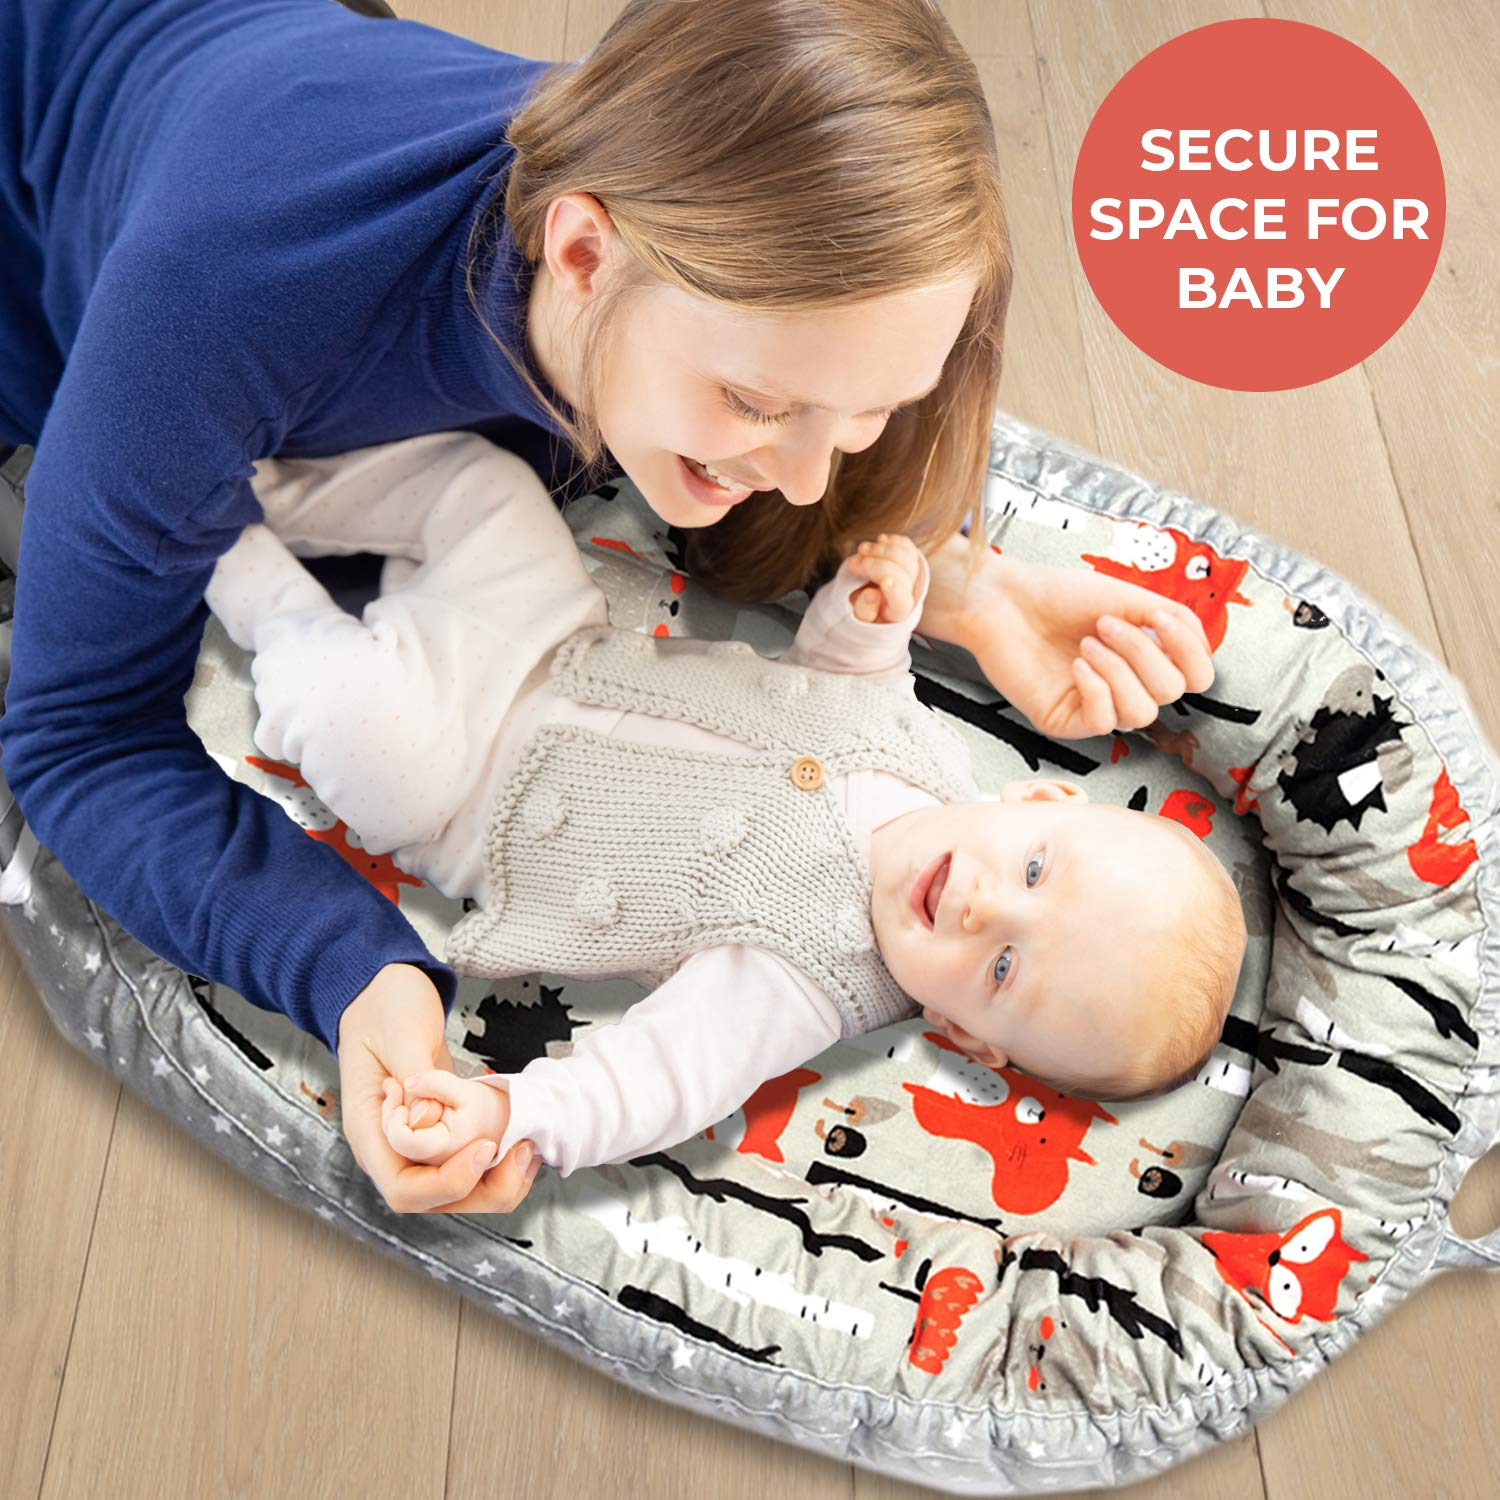 Coco&Lan Baby Lounger, Soft and Breathable Newborn Lounger, Reversible Baby Nest Sleeper, Newborn Lounger Pillow, Portable Baby Cosleeper, Baby Lounger Nest for Travel & Napping: Baby